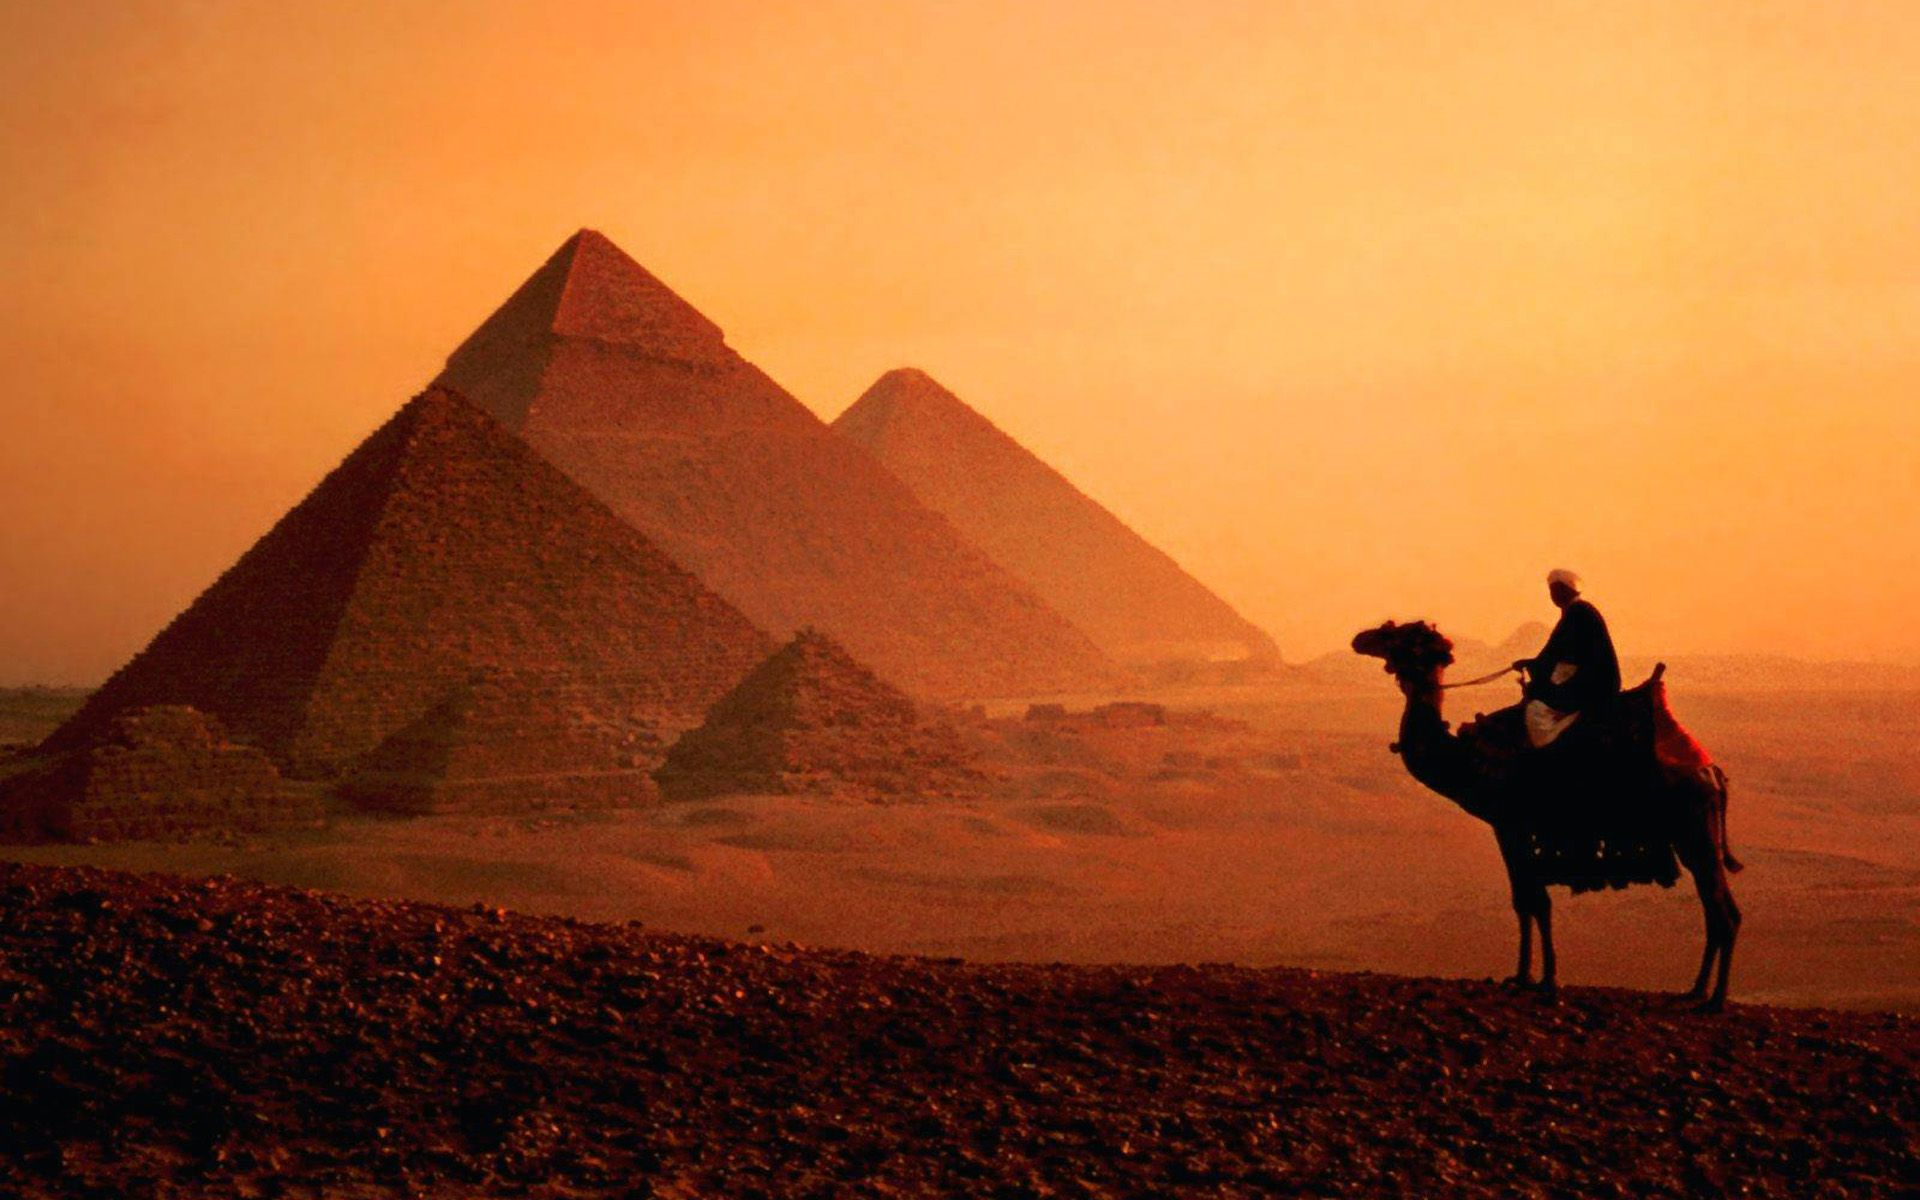 8589130570139-dusk-camel-pyramids-cairo-egypt-top-travel-lists-wallpaper-hd 5 destinos incríveis para casais aventureiros